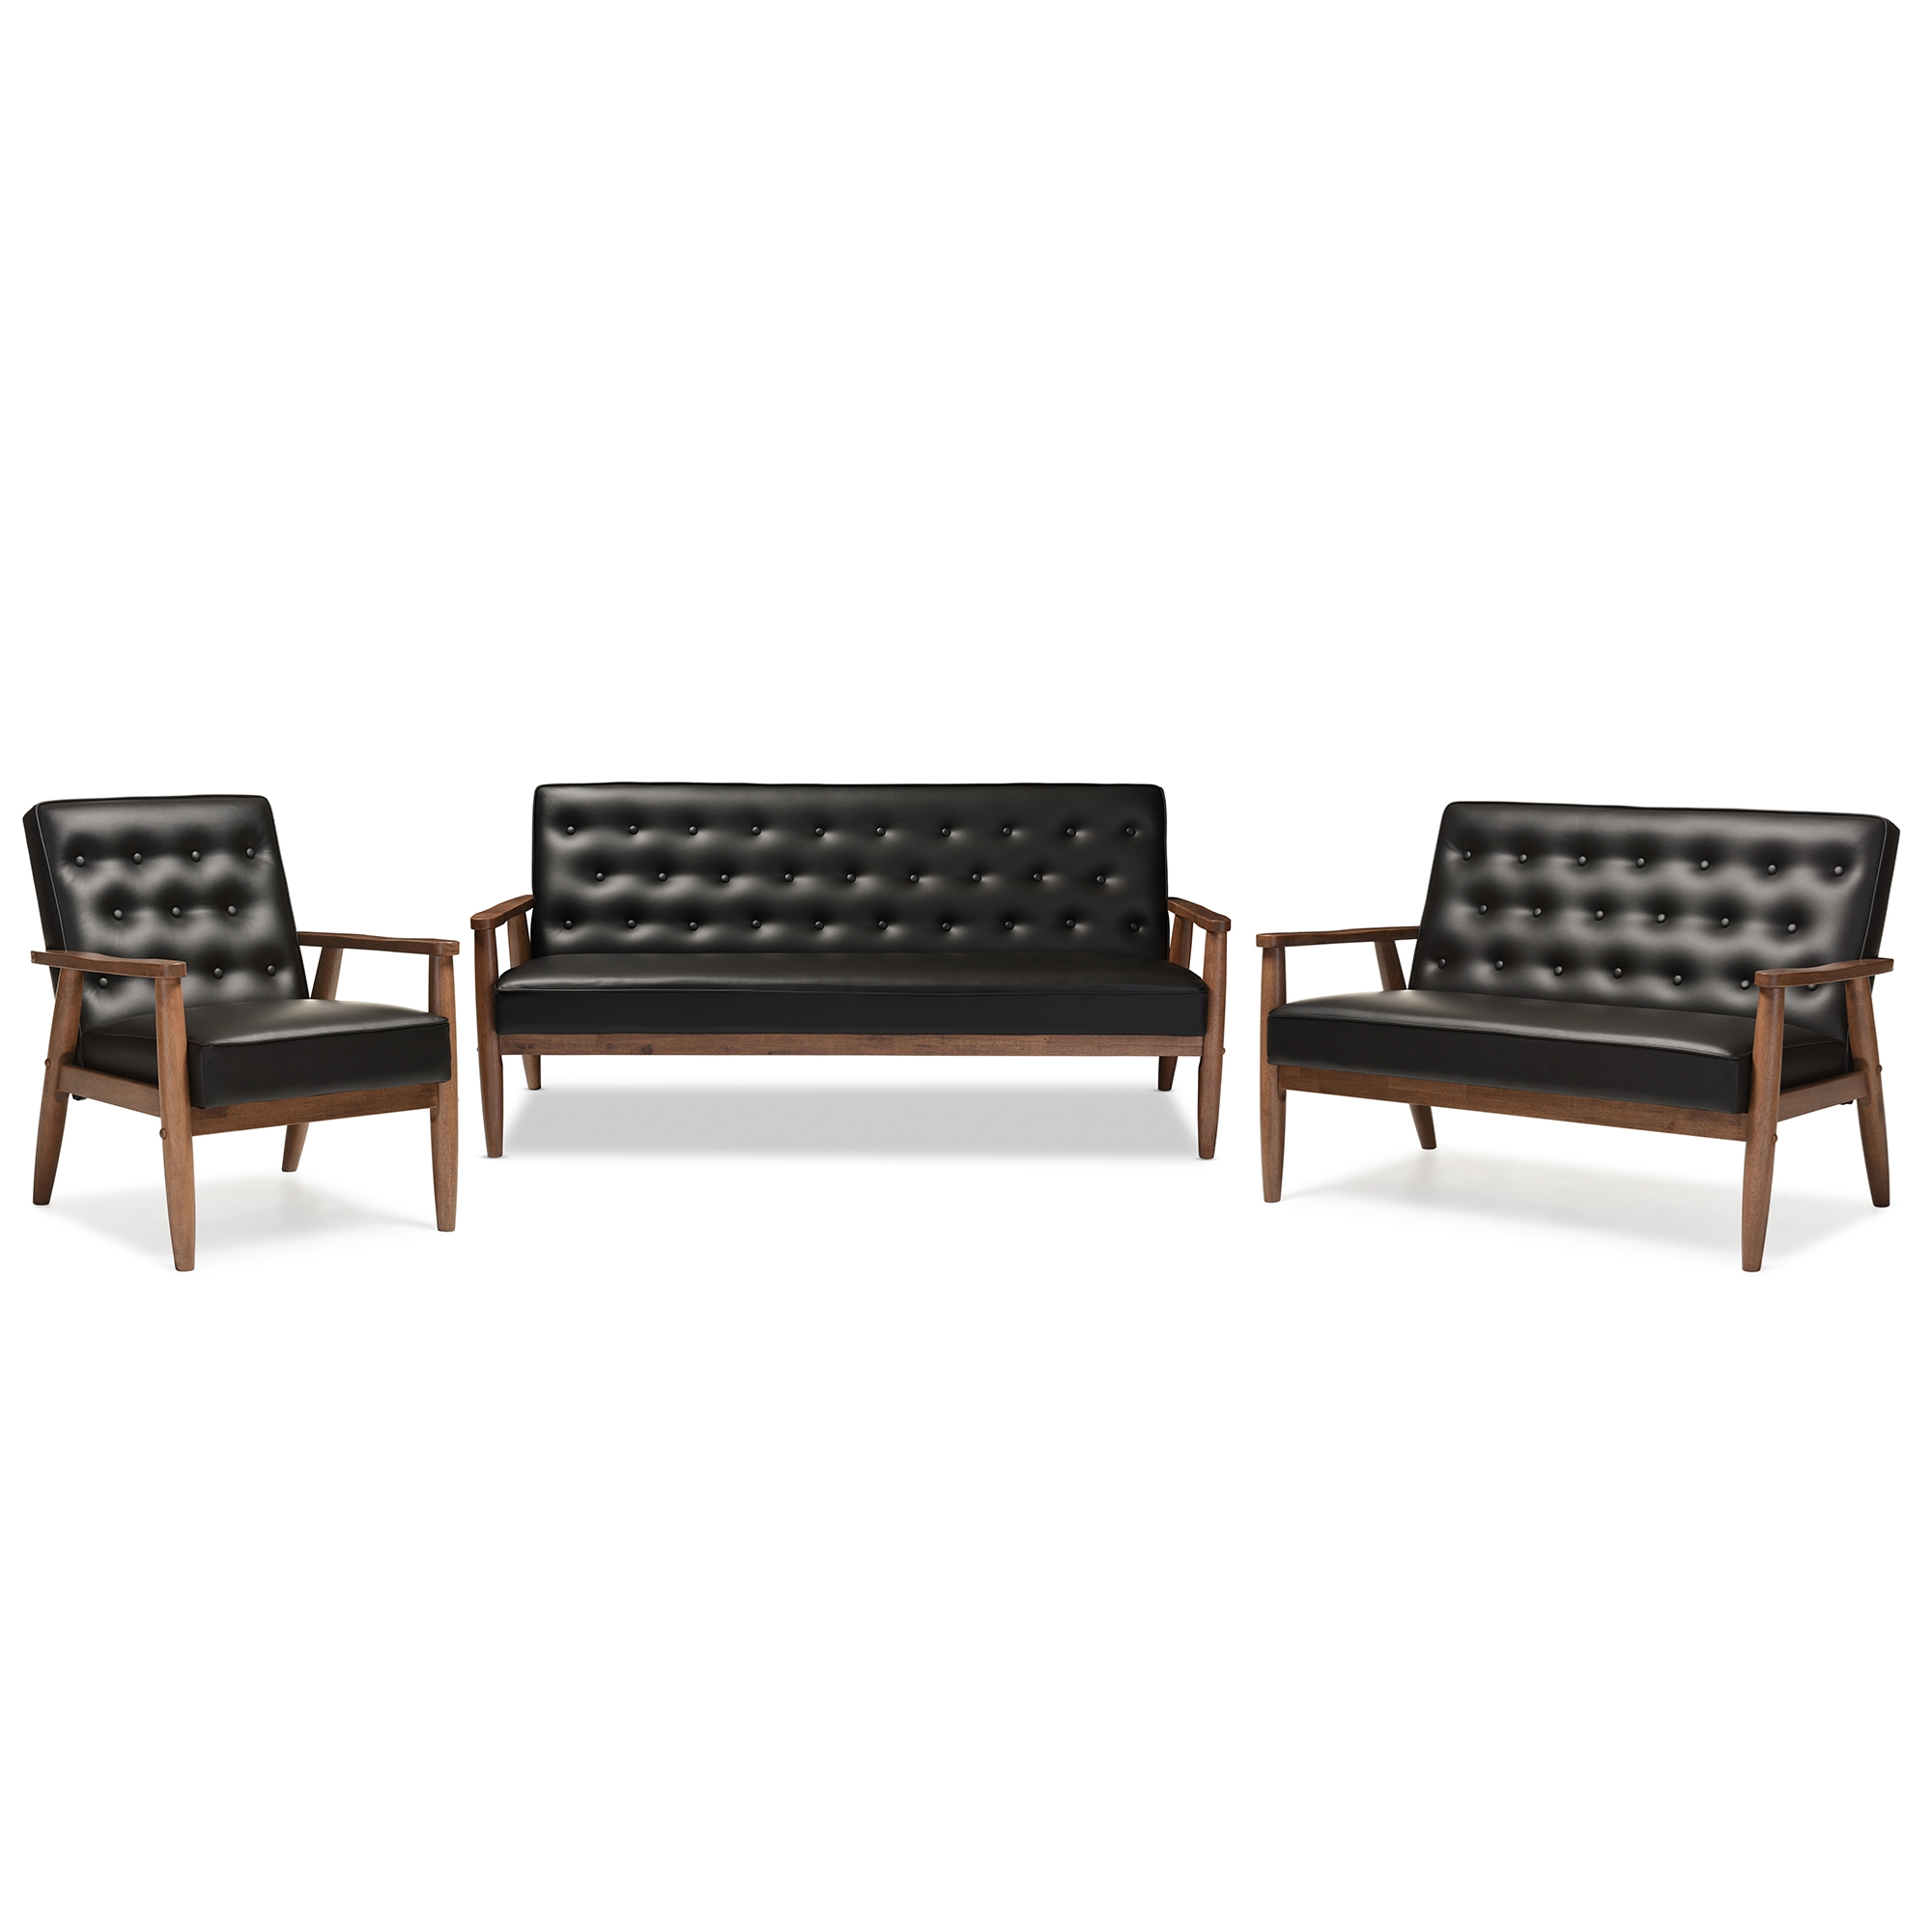 Retro Sofa Wood Baxton Studio Wholesale Sofa Sets Wholesale Sofas Loveseats